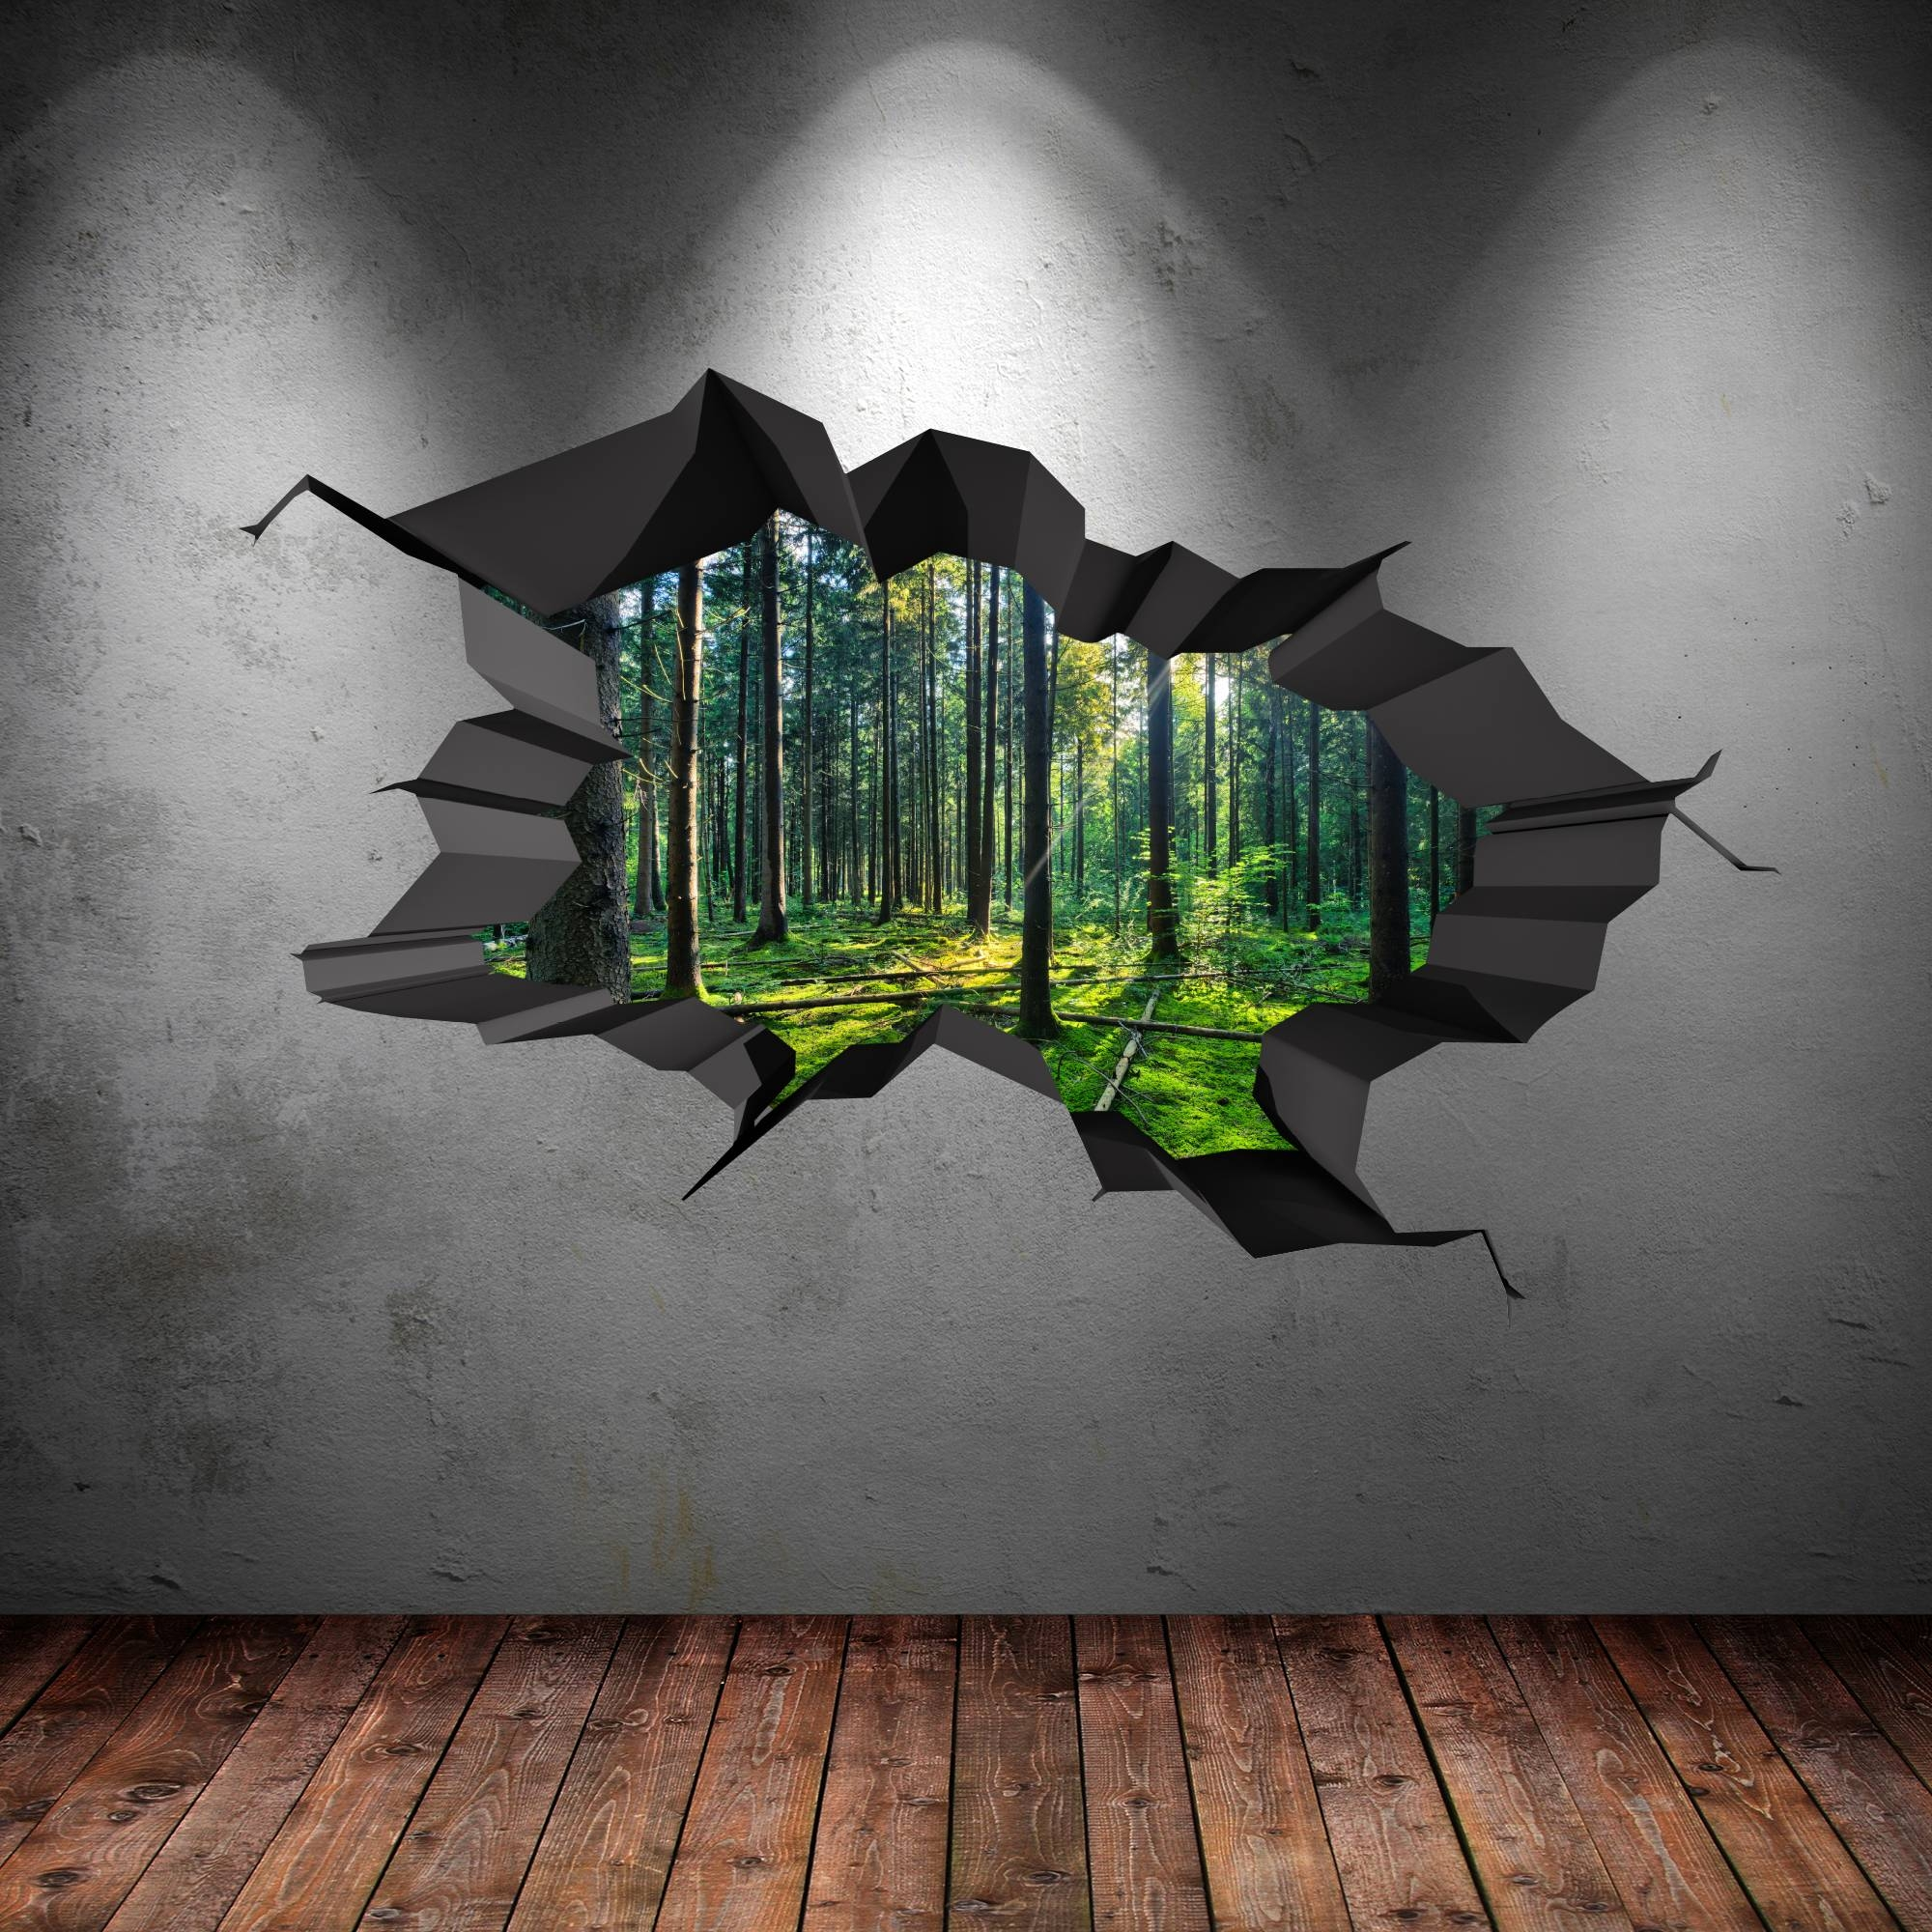 Stunning Wall Art 3D Images – Transformatorio – Transformatorio Pertaining To 2018 3D Wall Art Illusions (View 18 of 20)